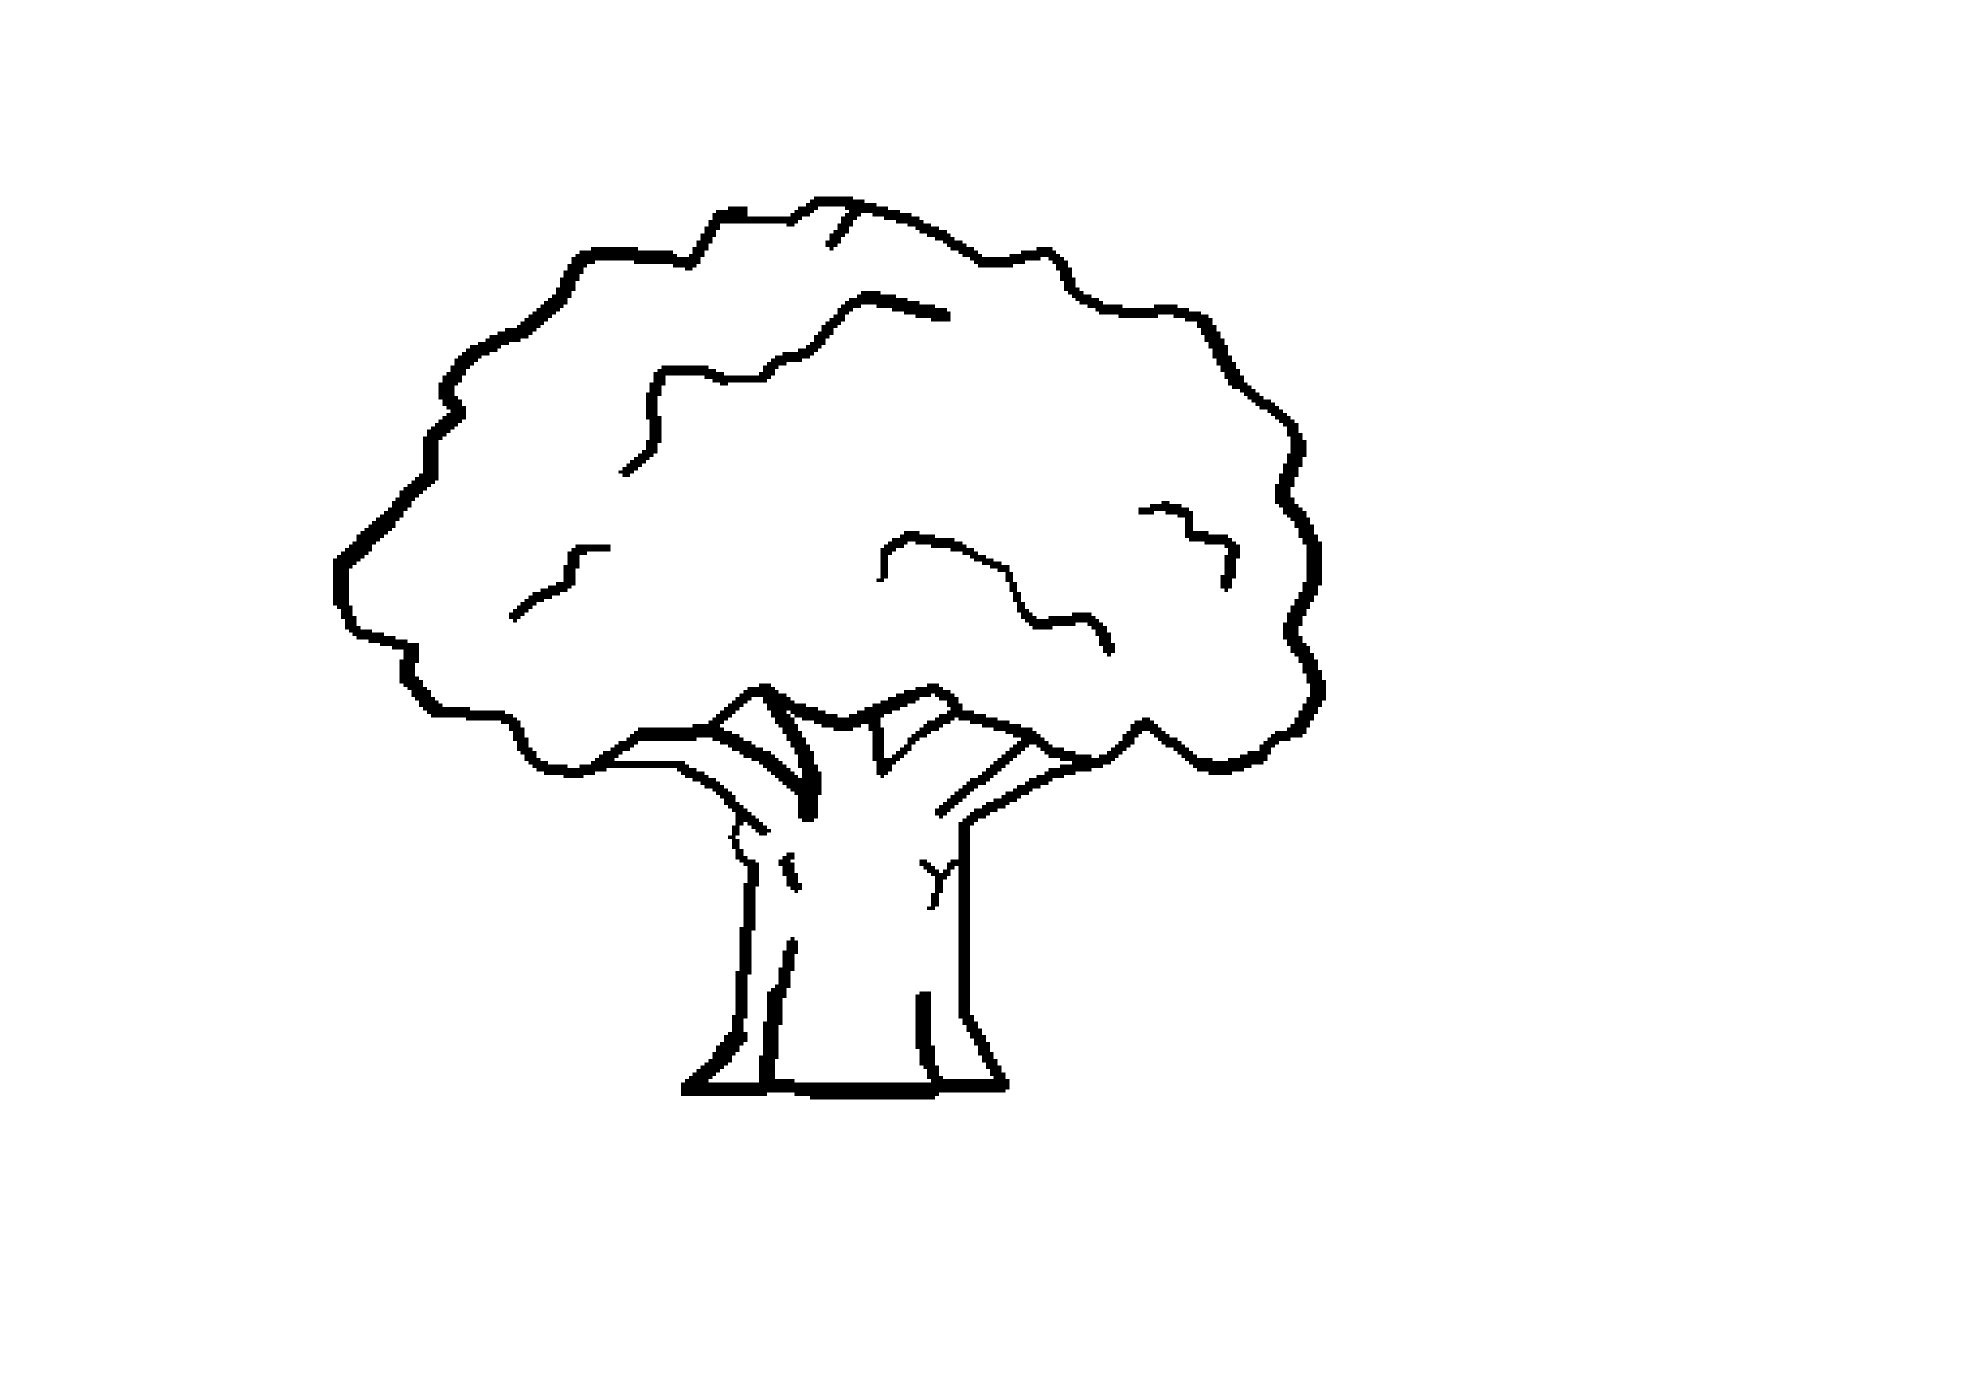 Clip Art Tree Black White Line Art Coloring